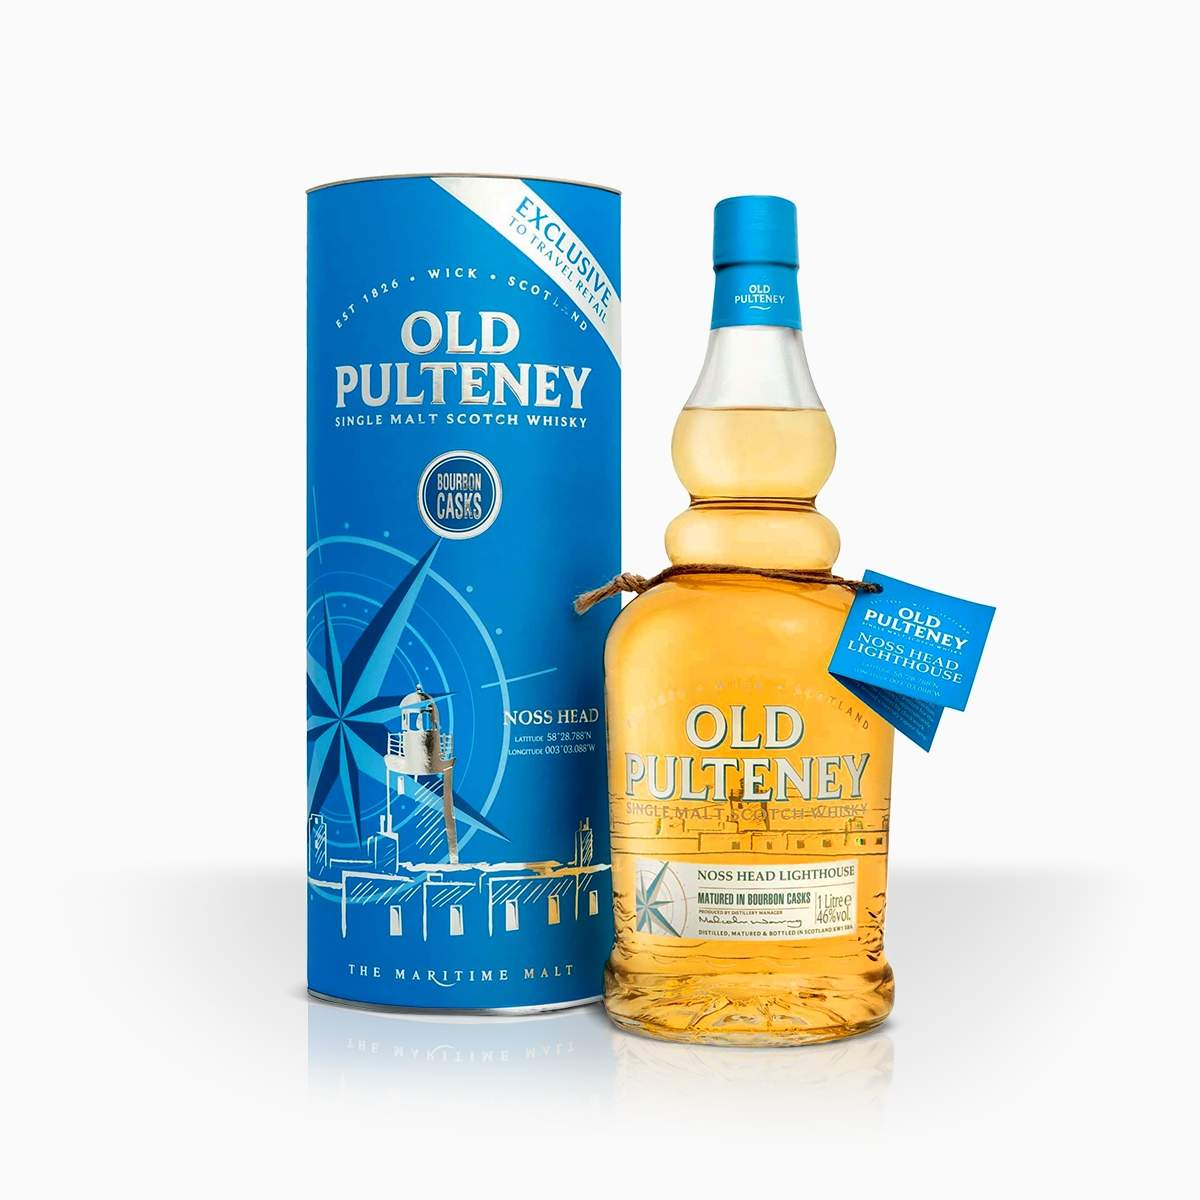 Whisky Old Pulteney Noss Head 46% 1l